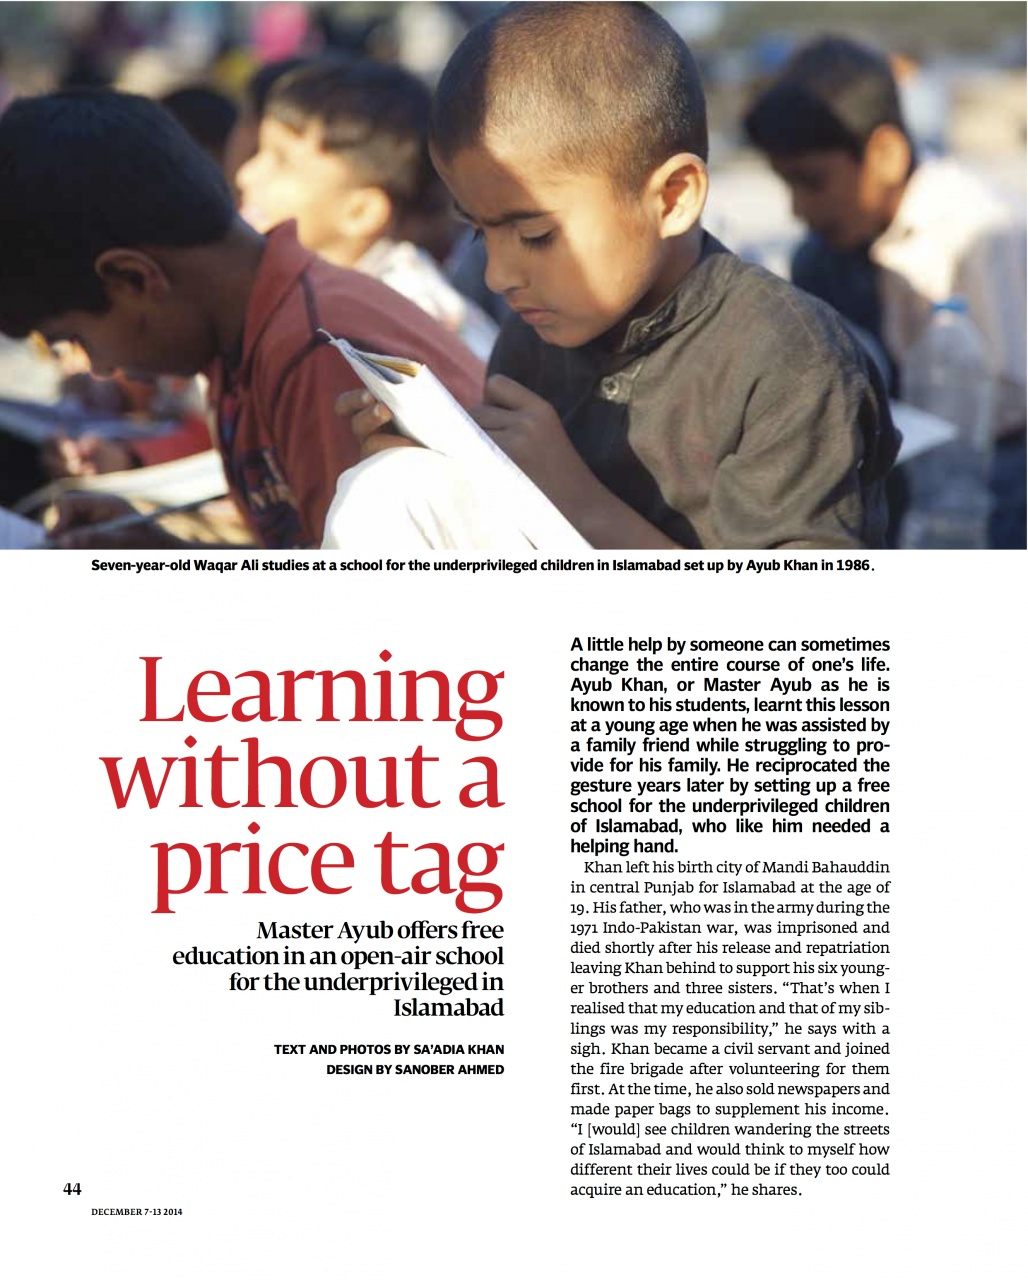 Learning Without a Pricetag